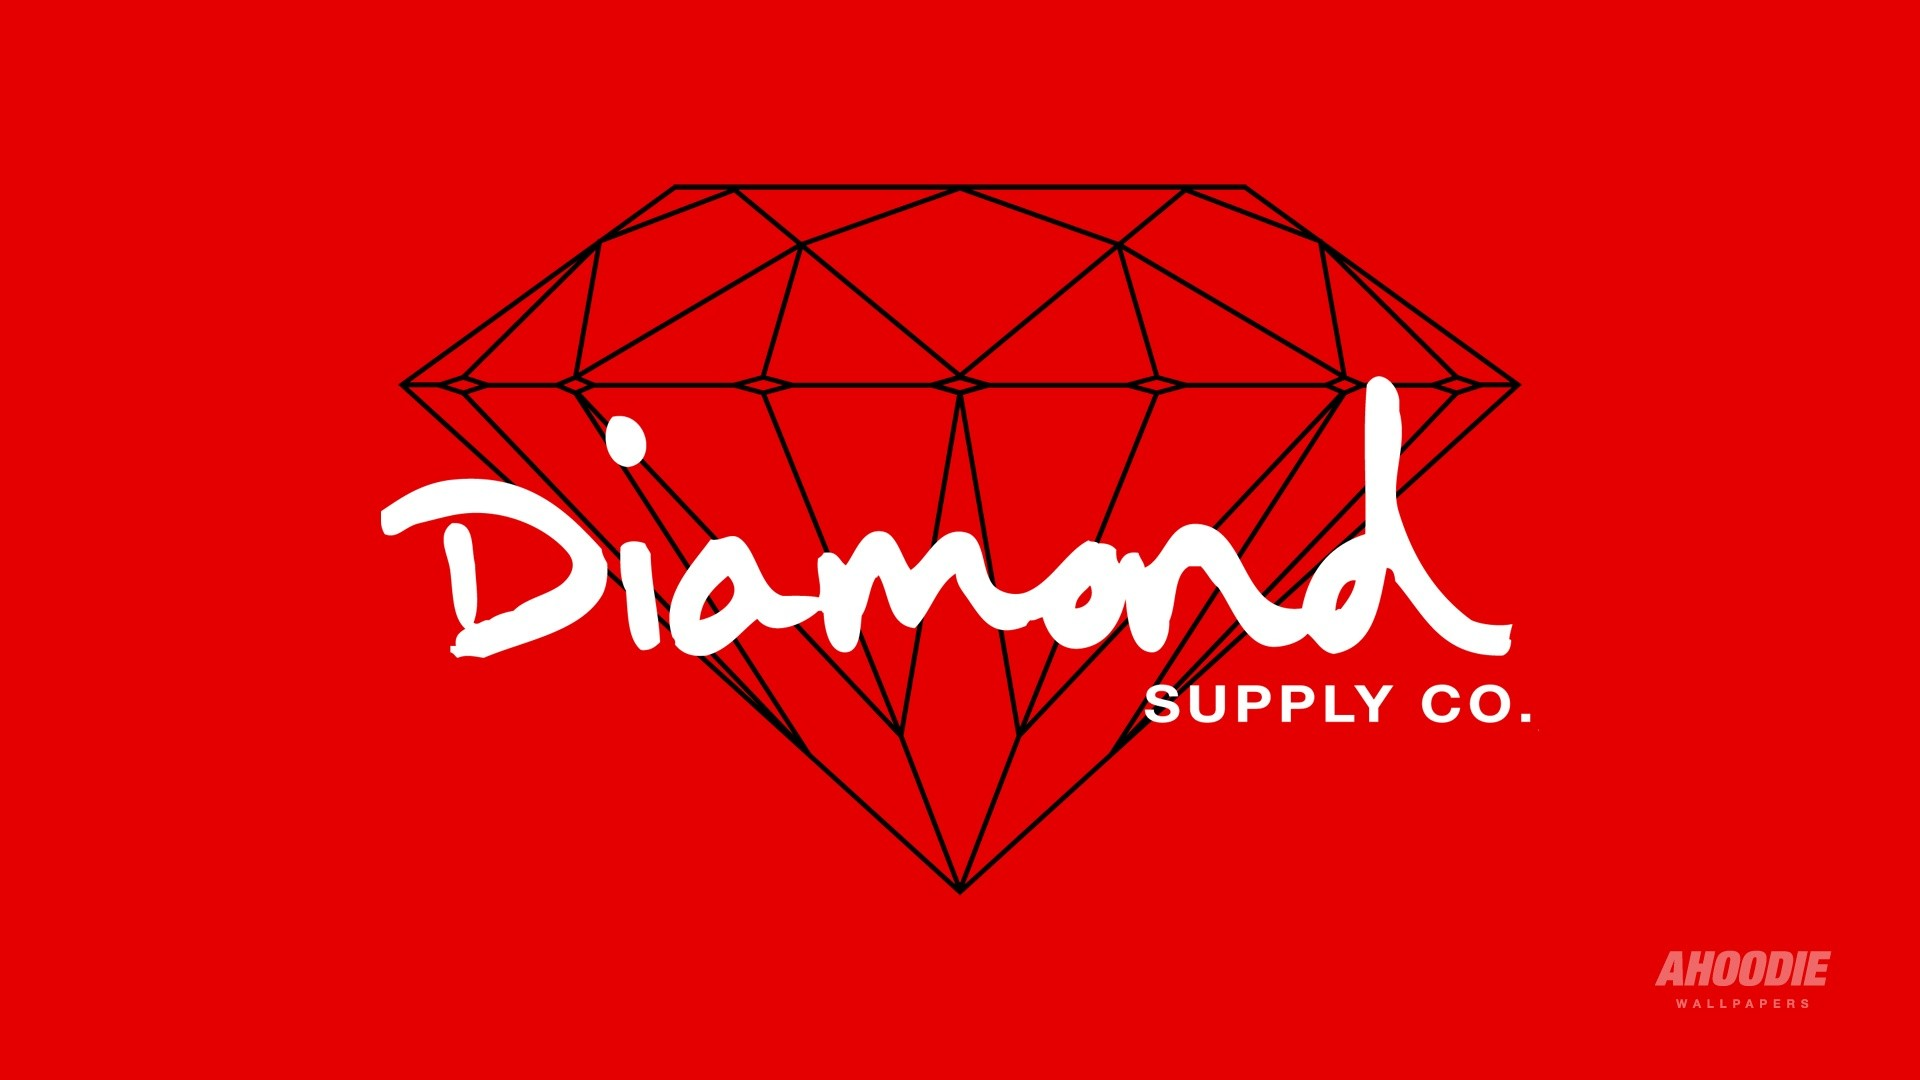 9 HD Diamond Supply Co Desktop Wallpapers For Free Download